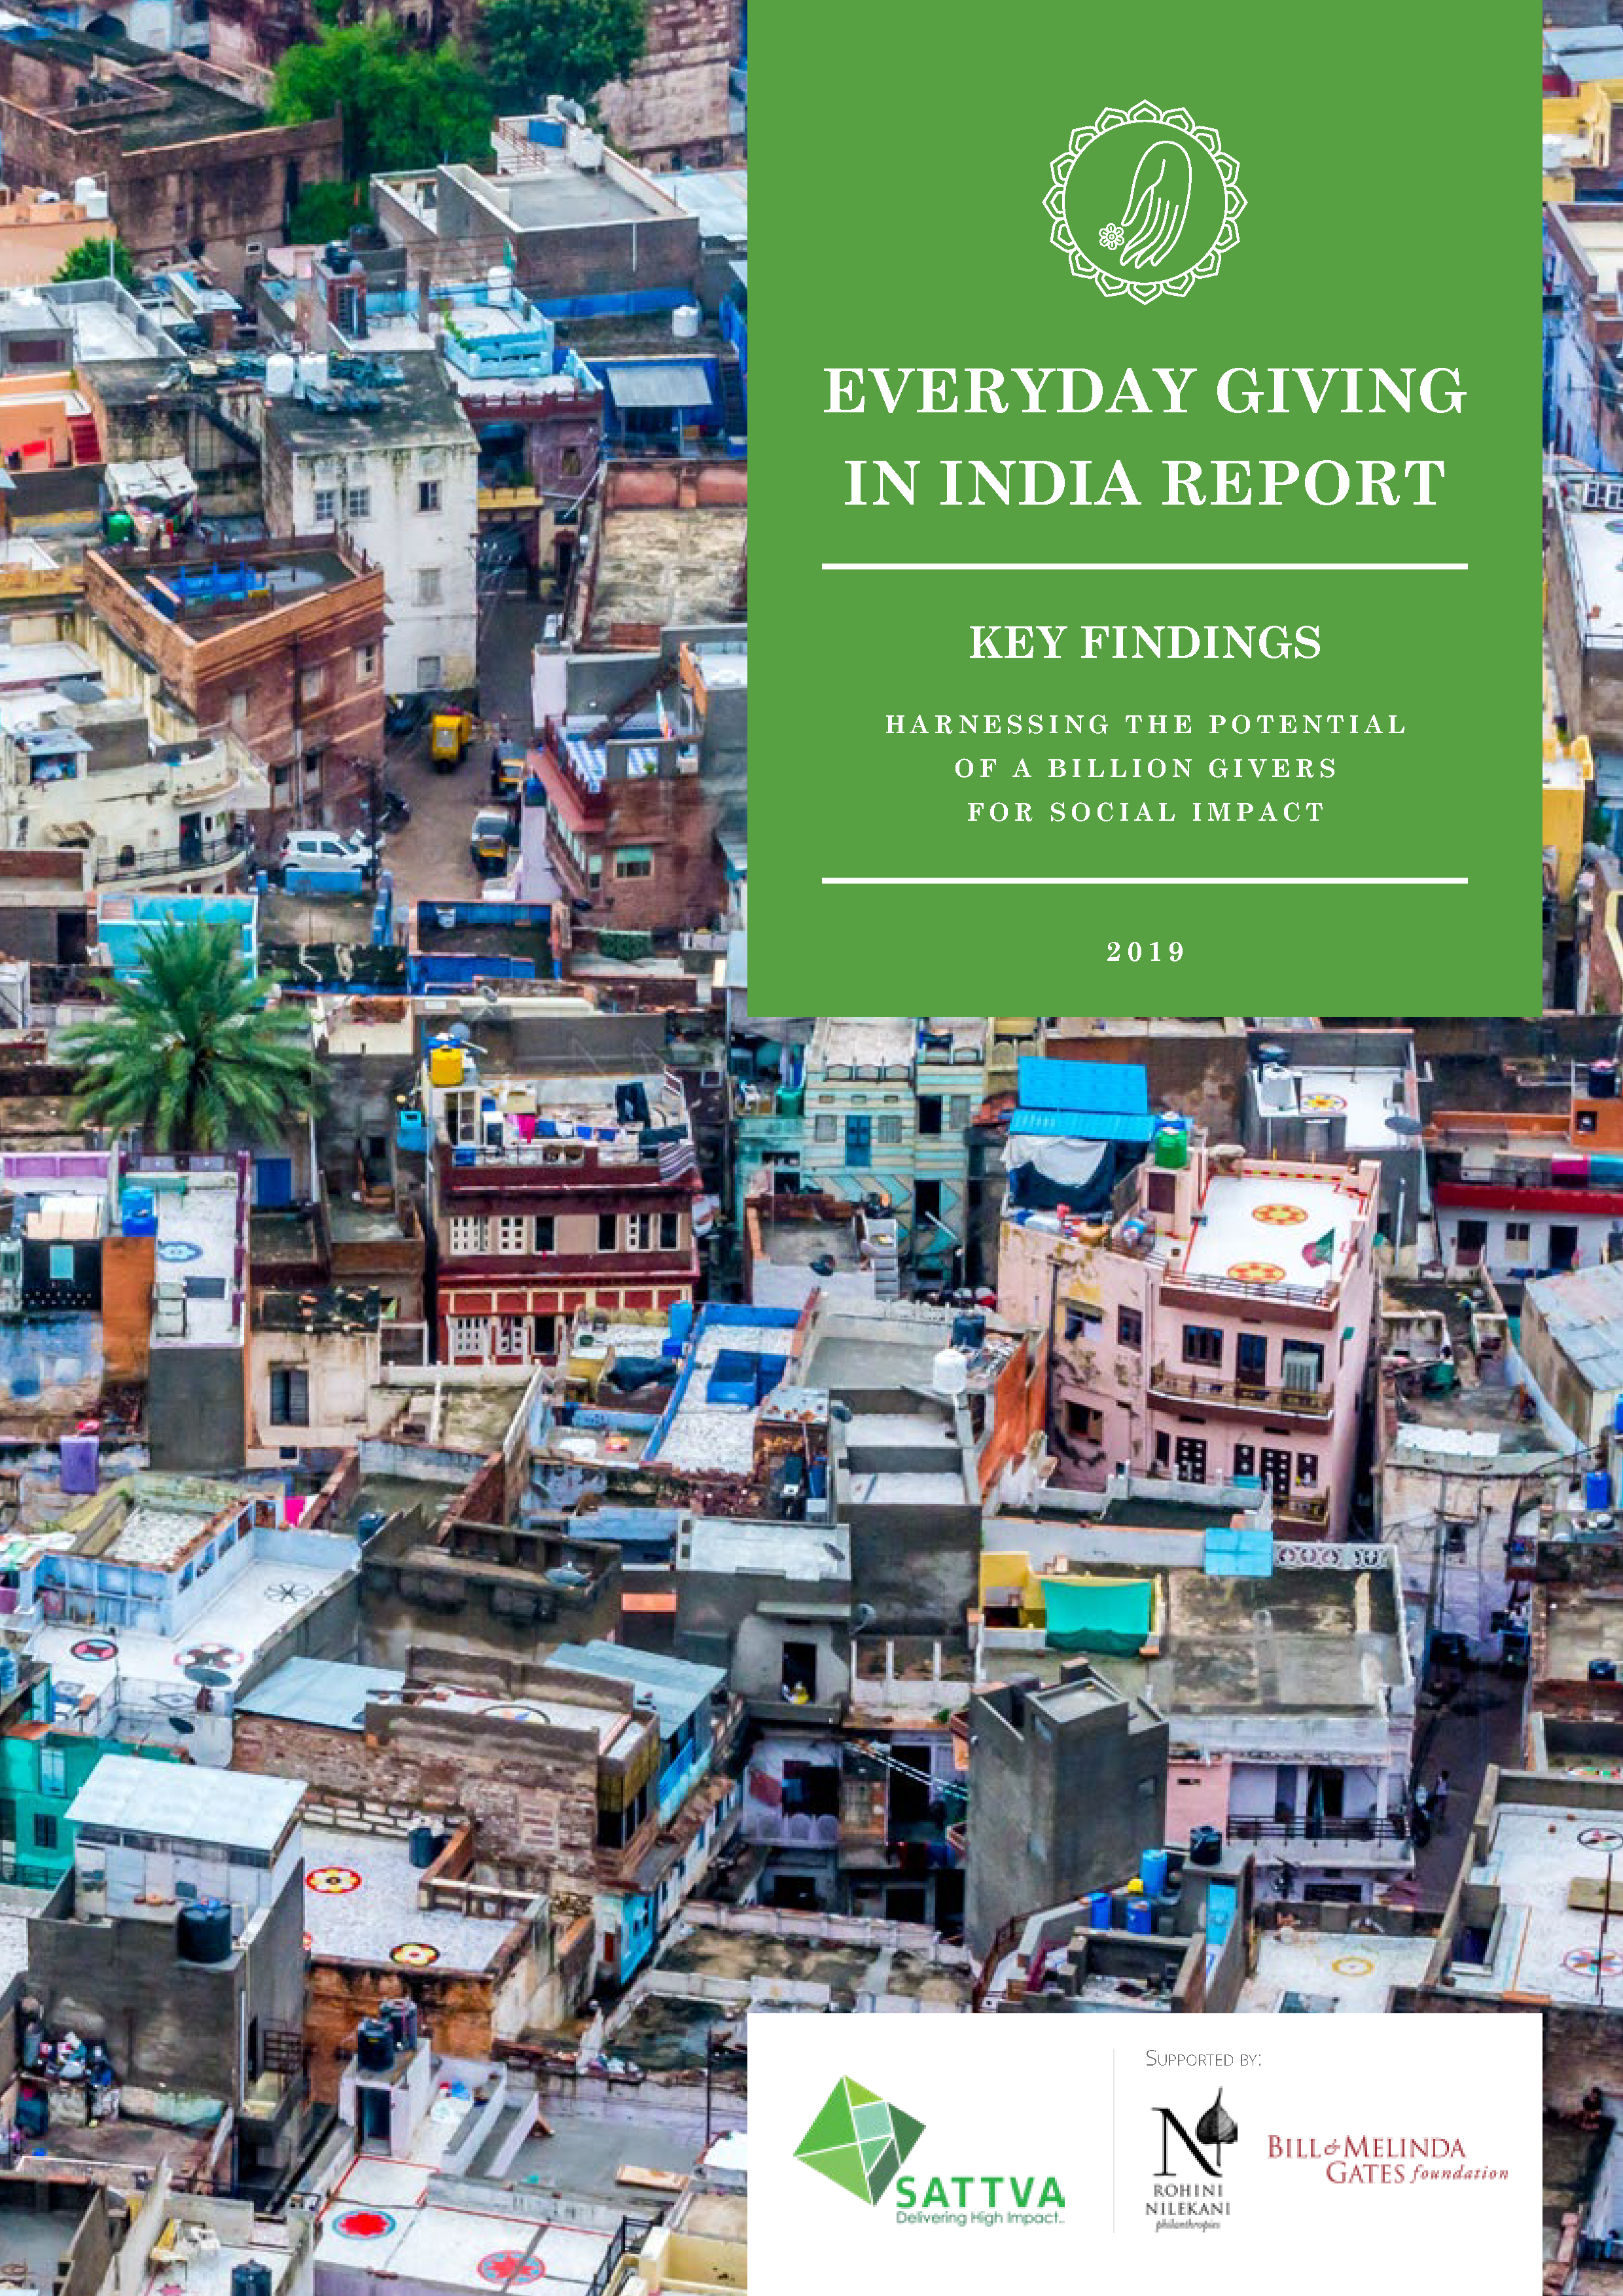 The largest study on India's everyday giving market